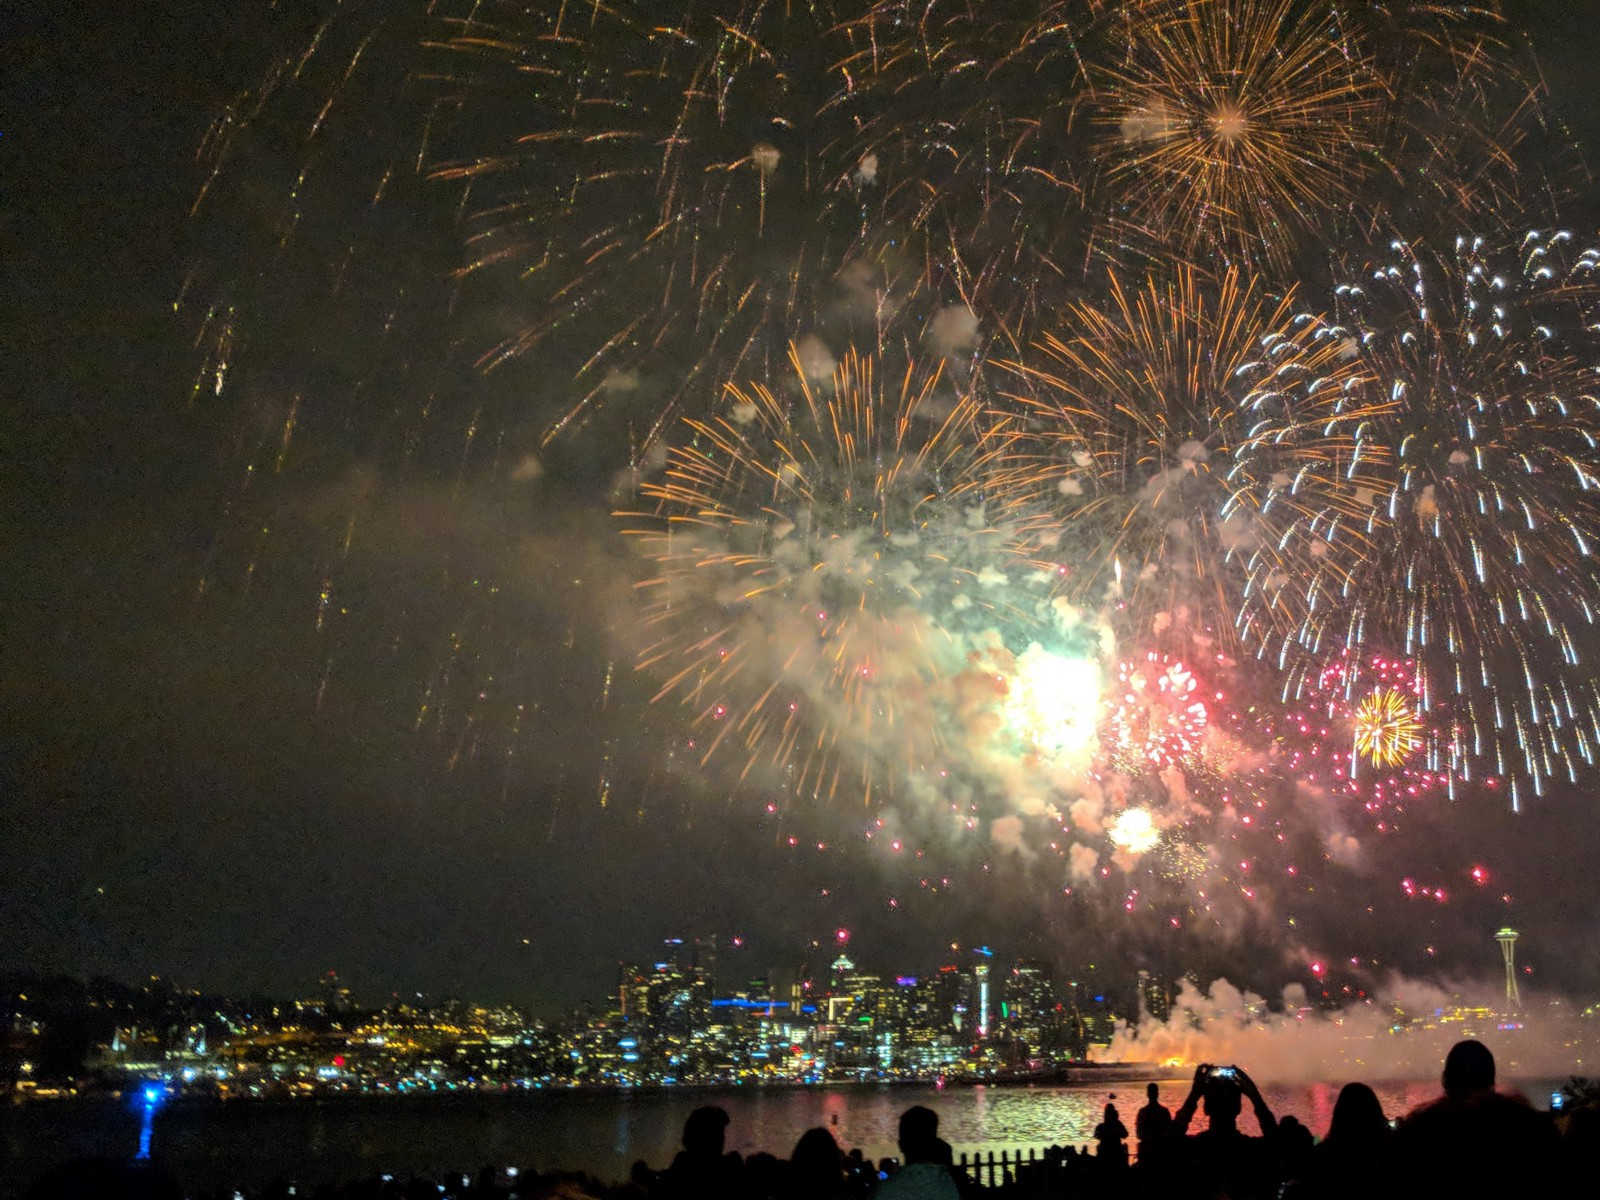 an amazing display of fireworks at gas works park